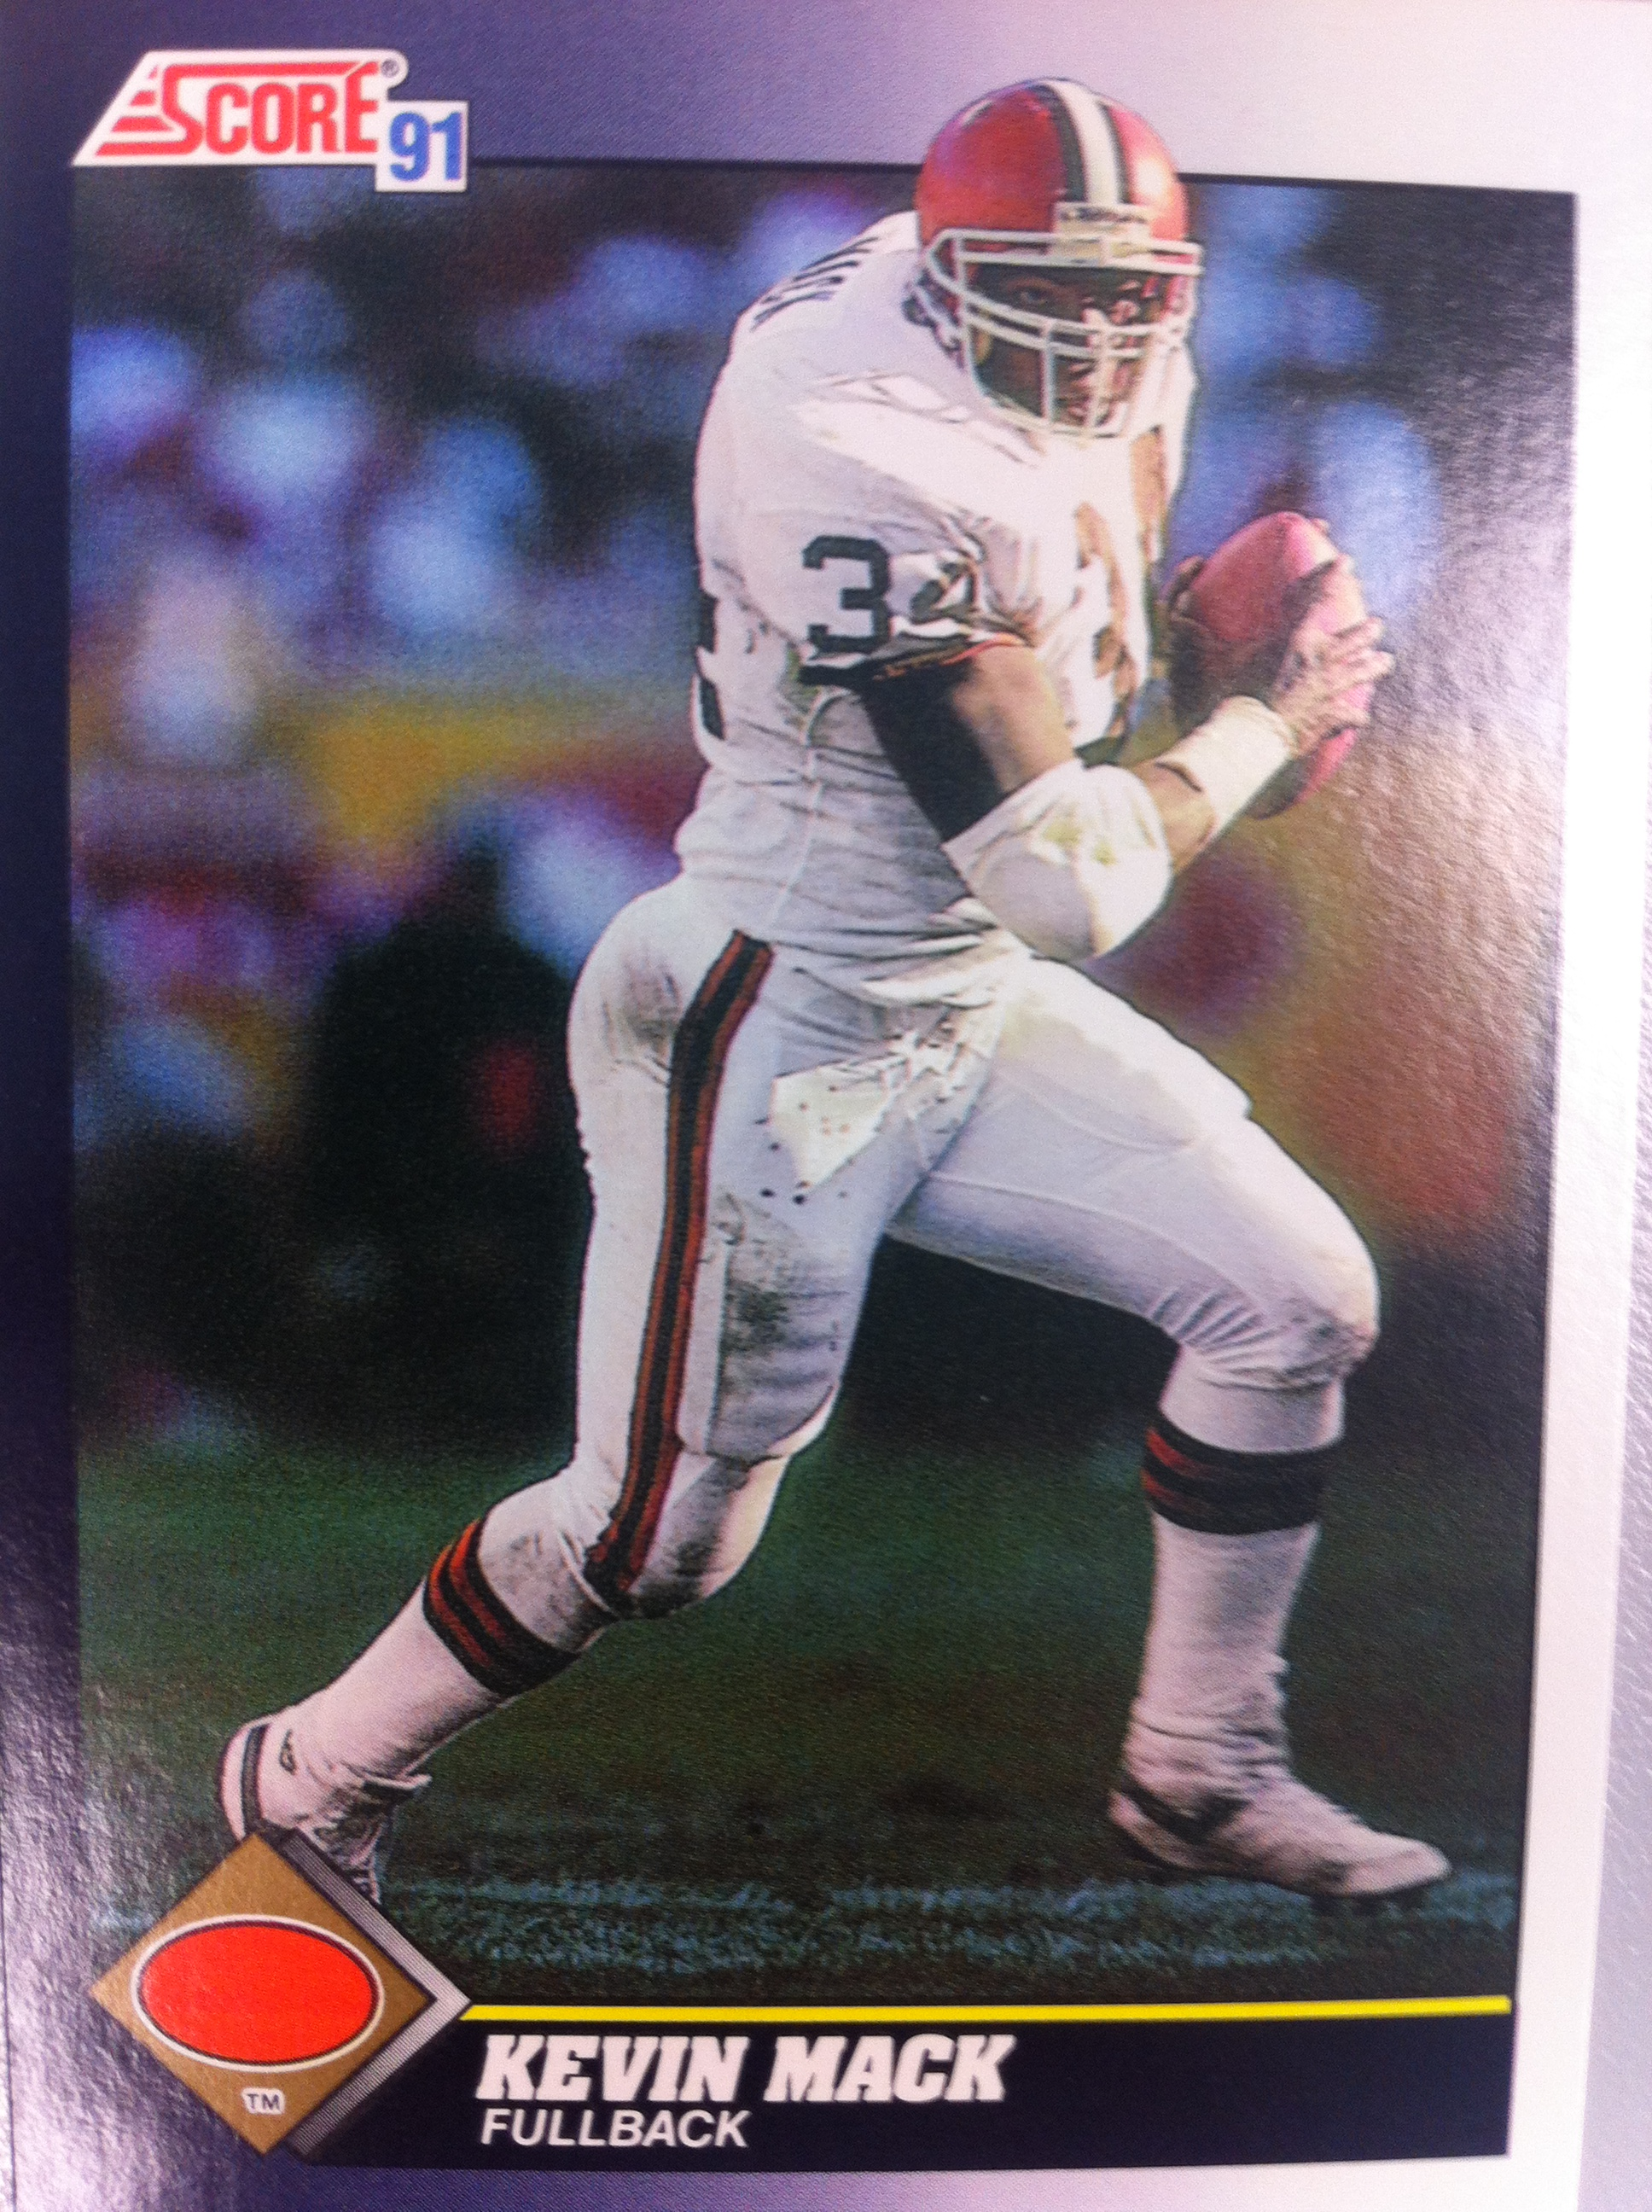 Kevin_Mack-Score_91_Football_Card.jpg